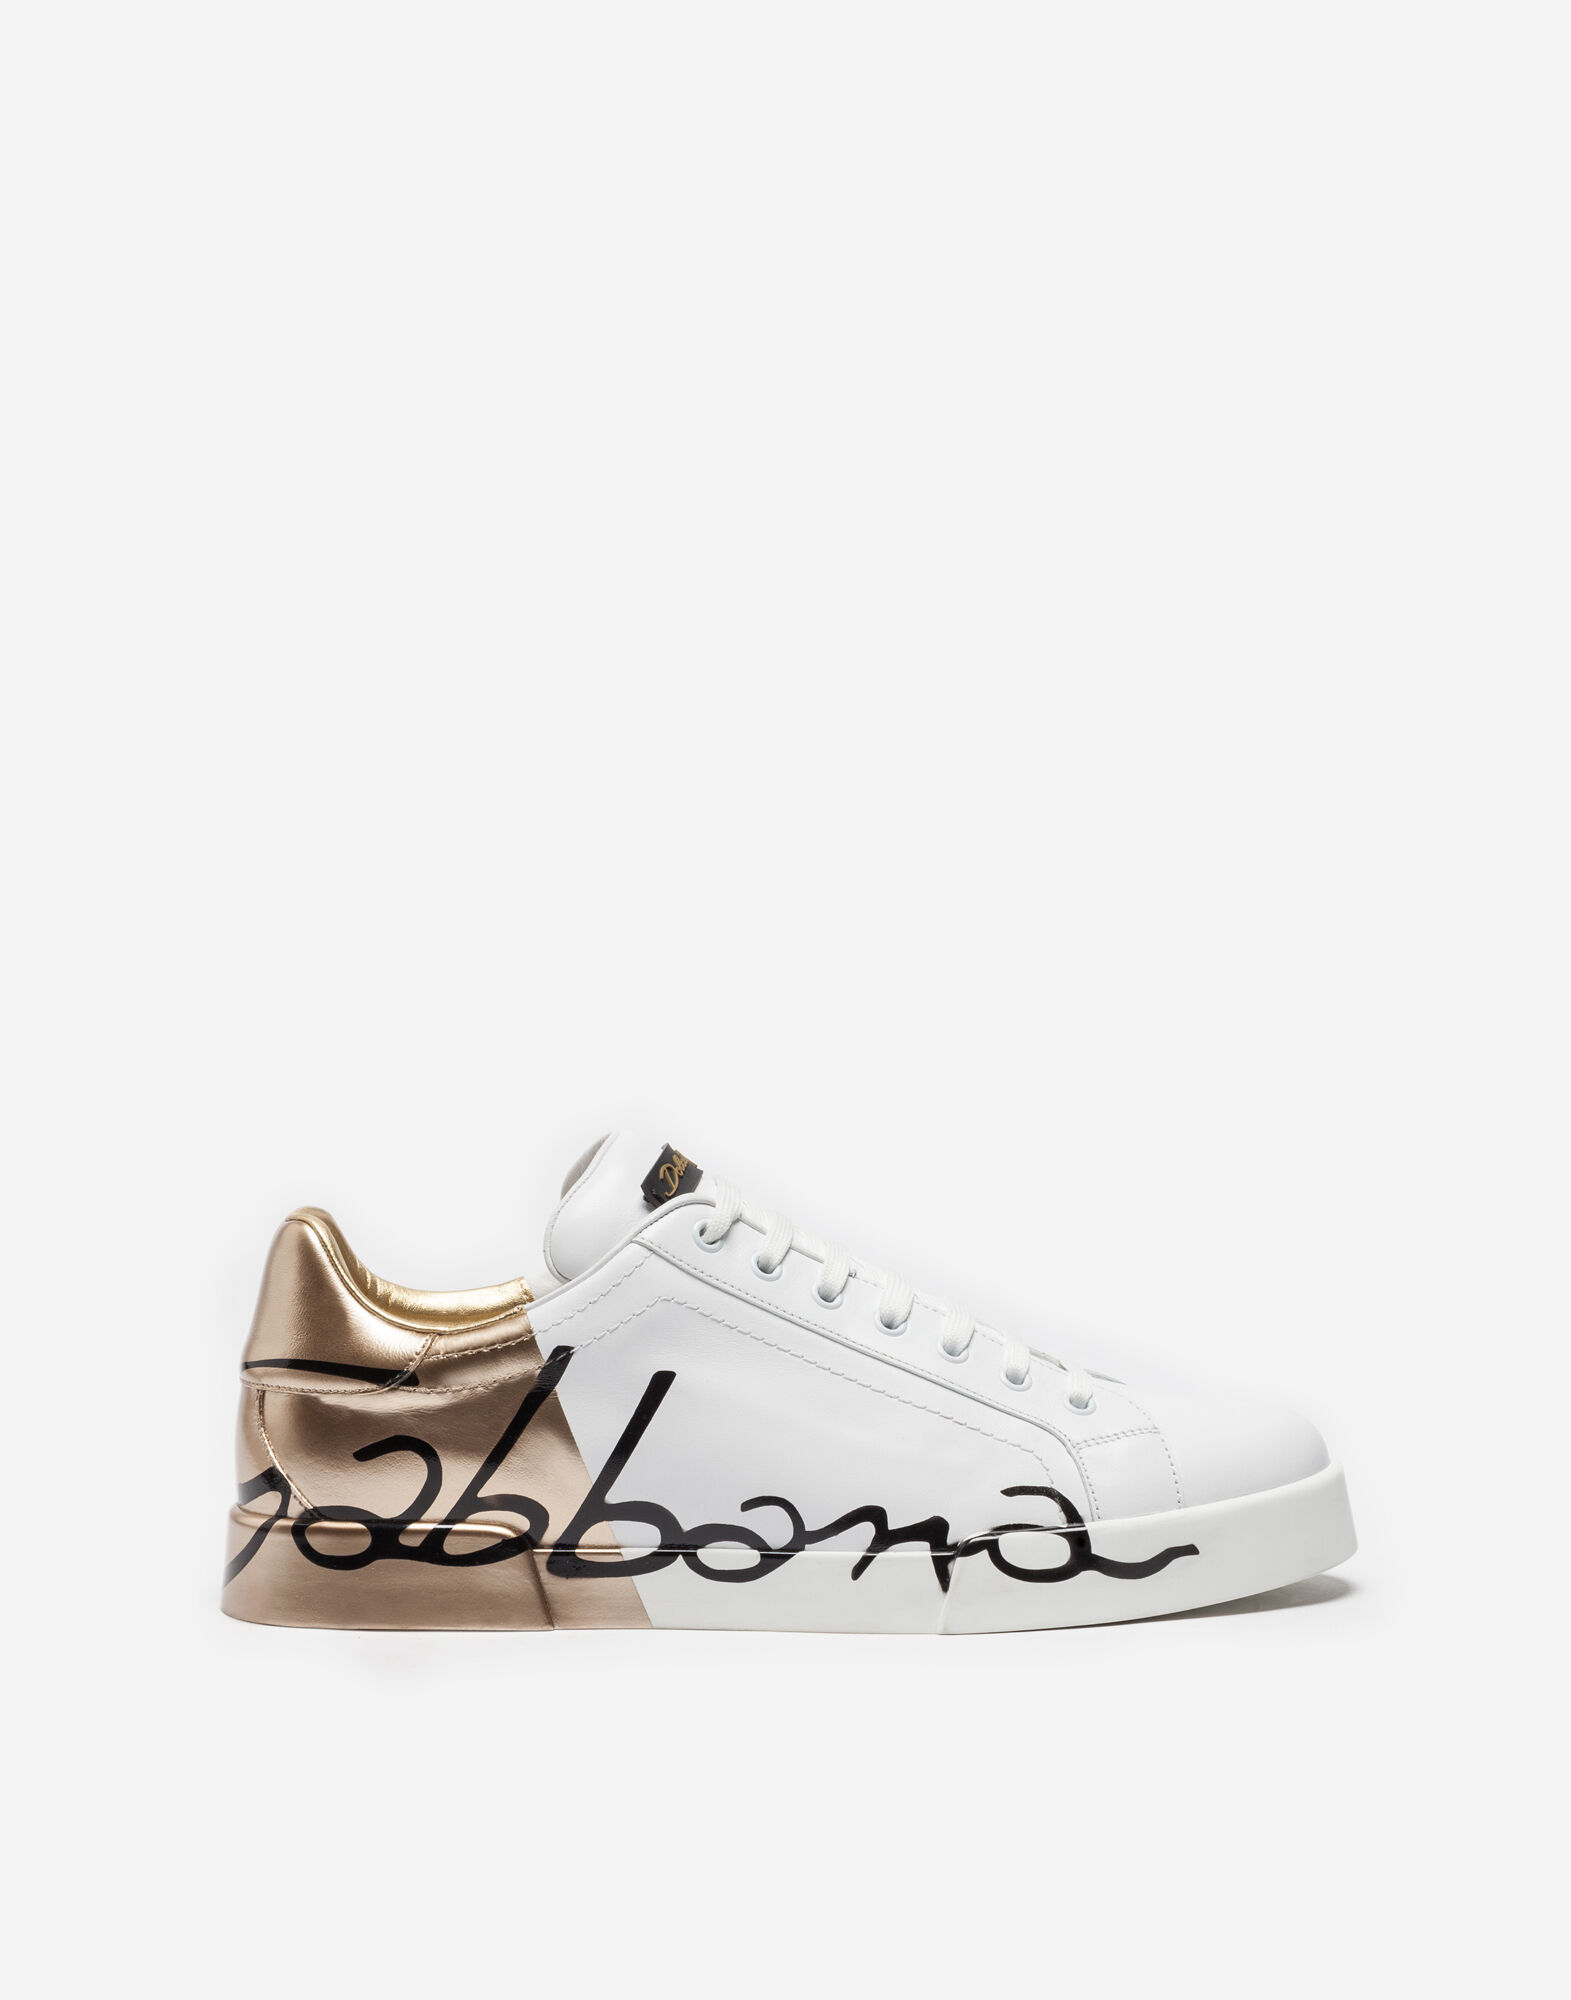 dolce & gabbana men's leather sneakers shoes